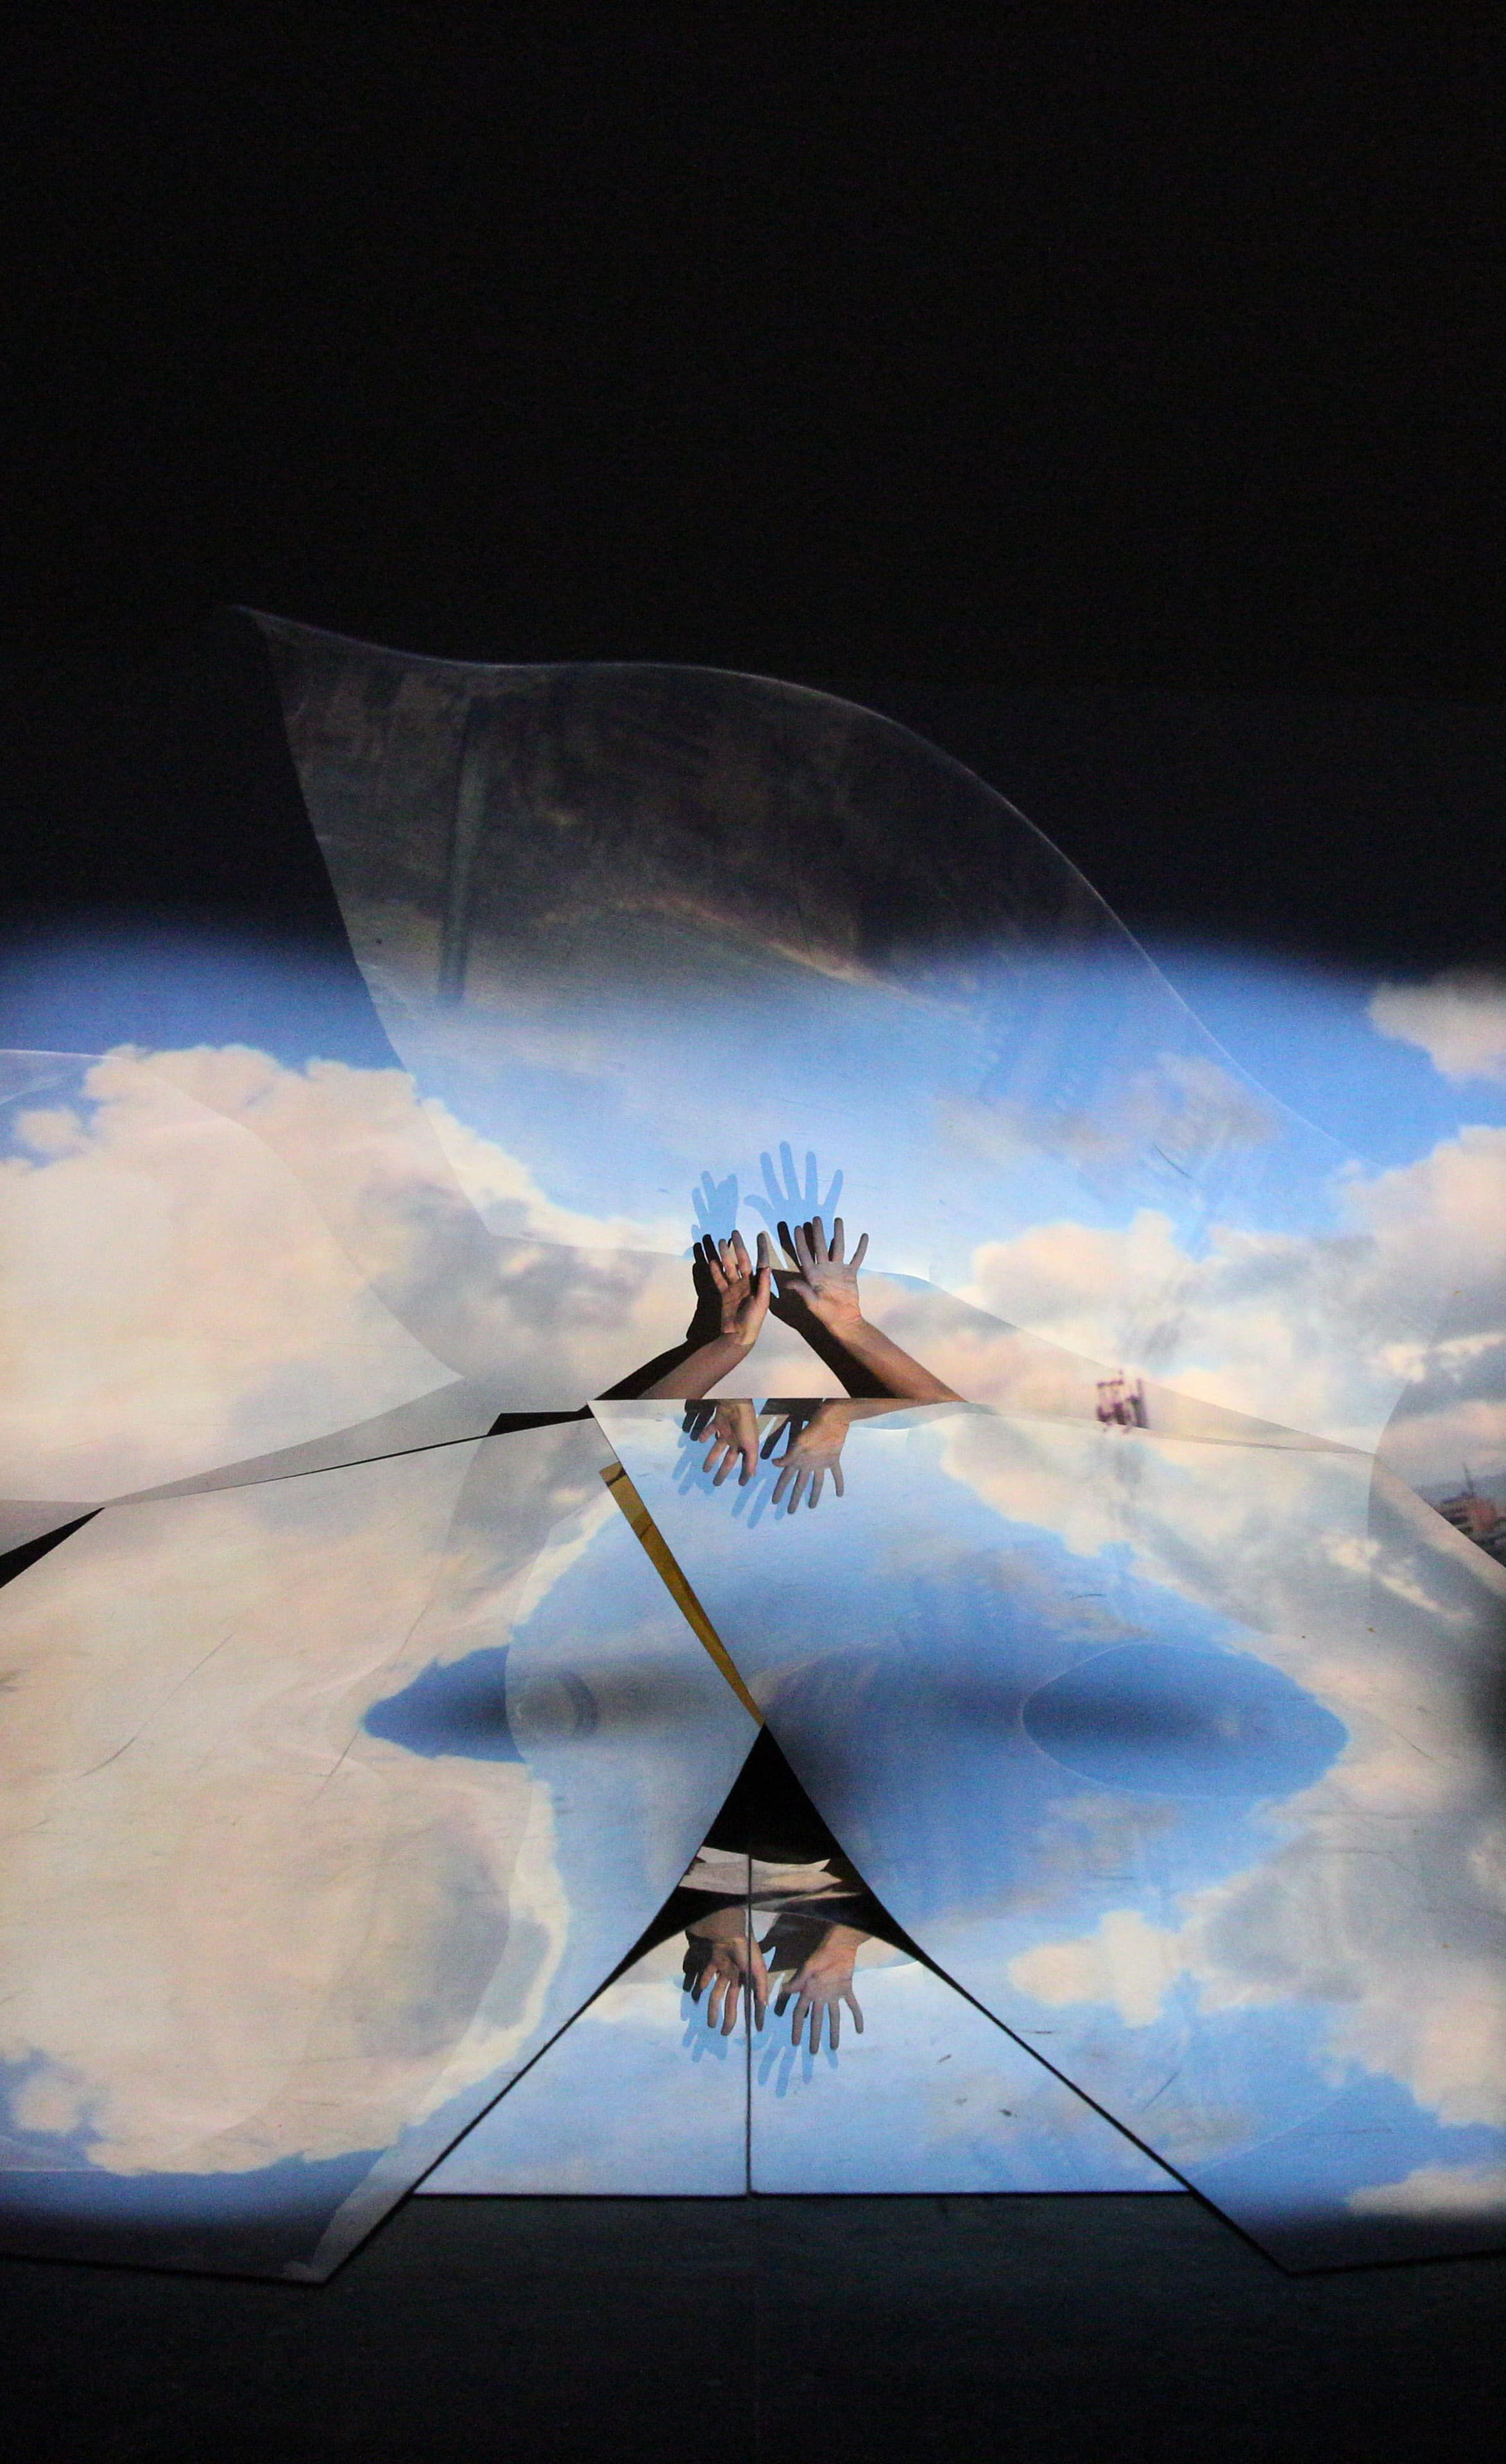 Two hands reach out behind set pieces painted with clouds